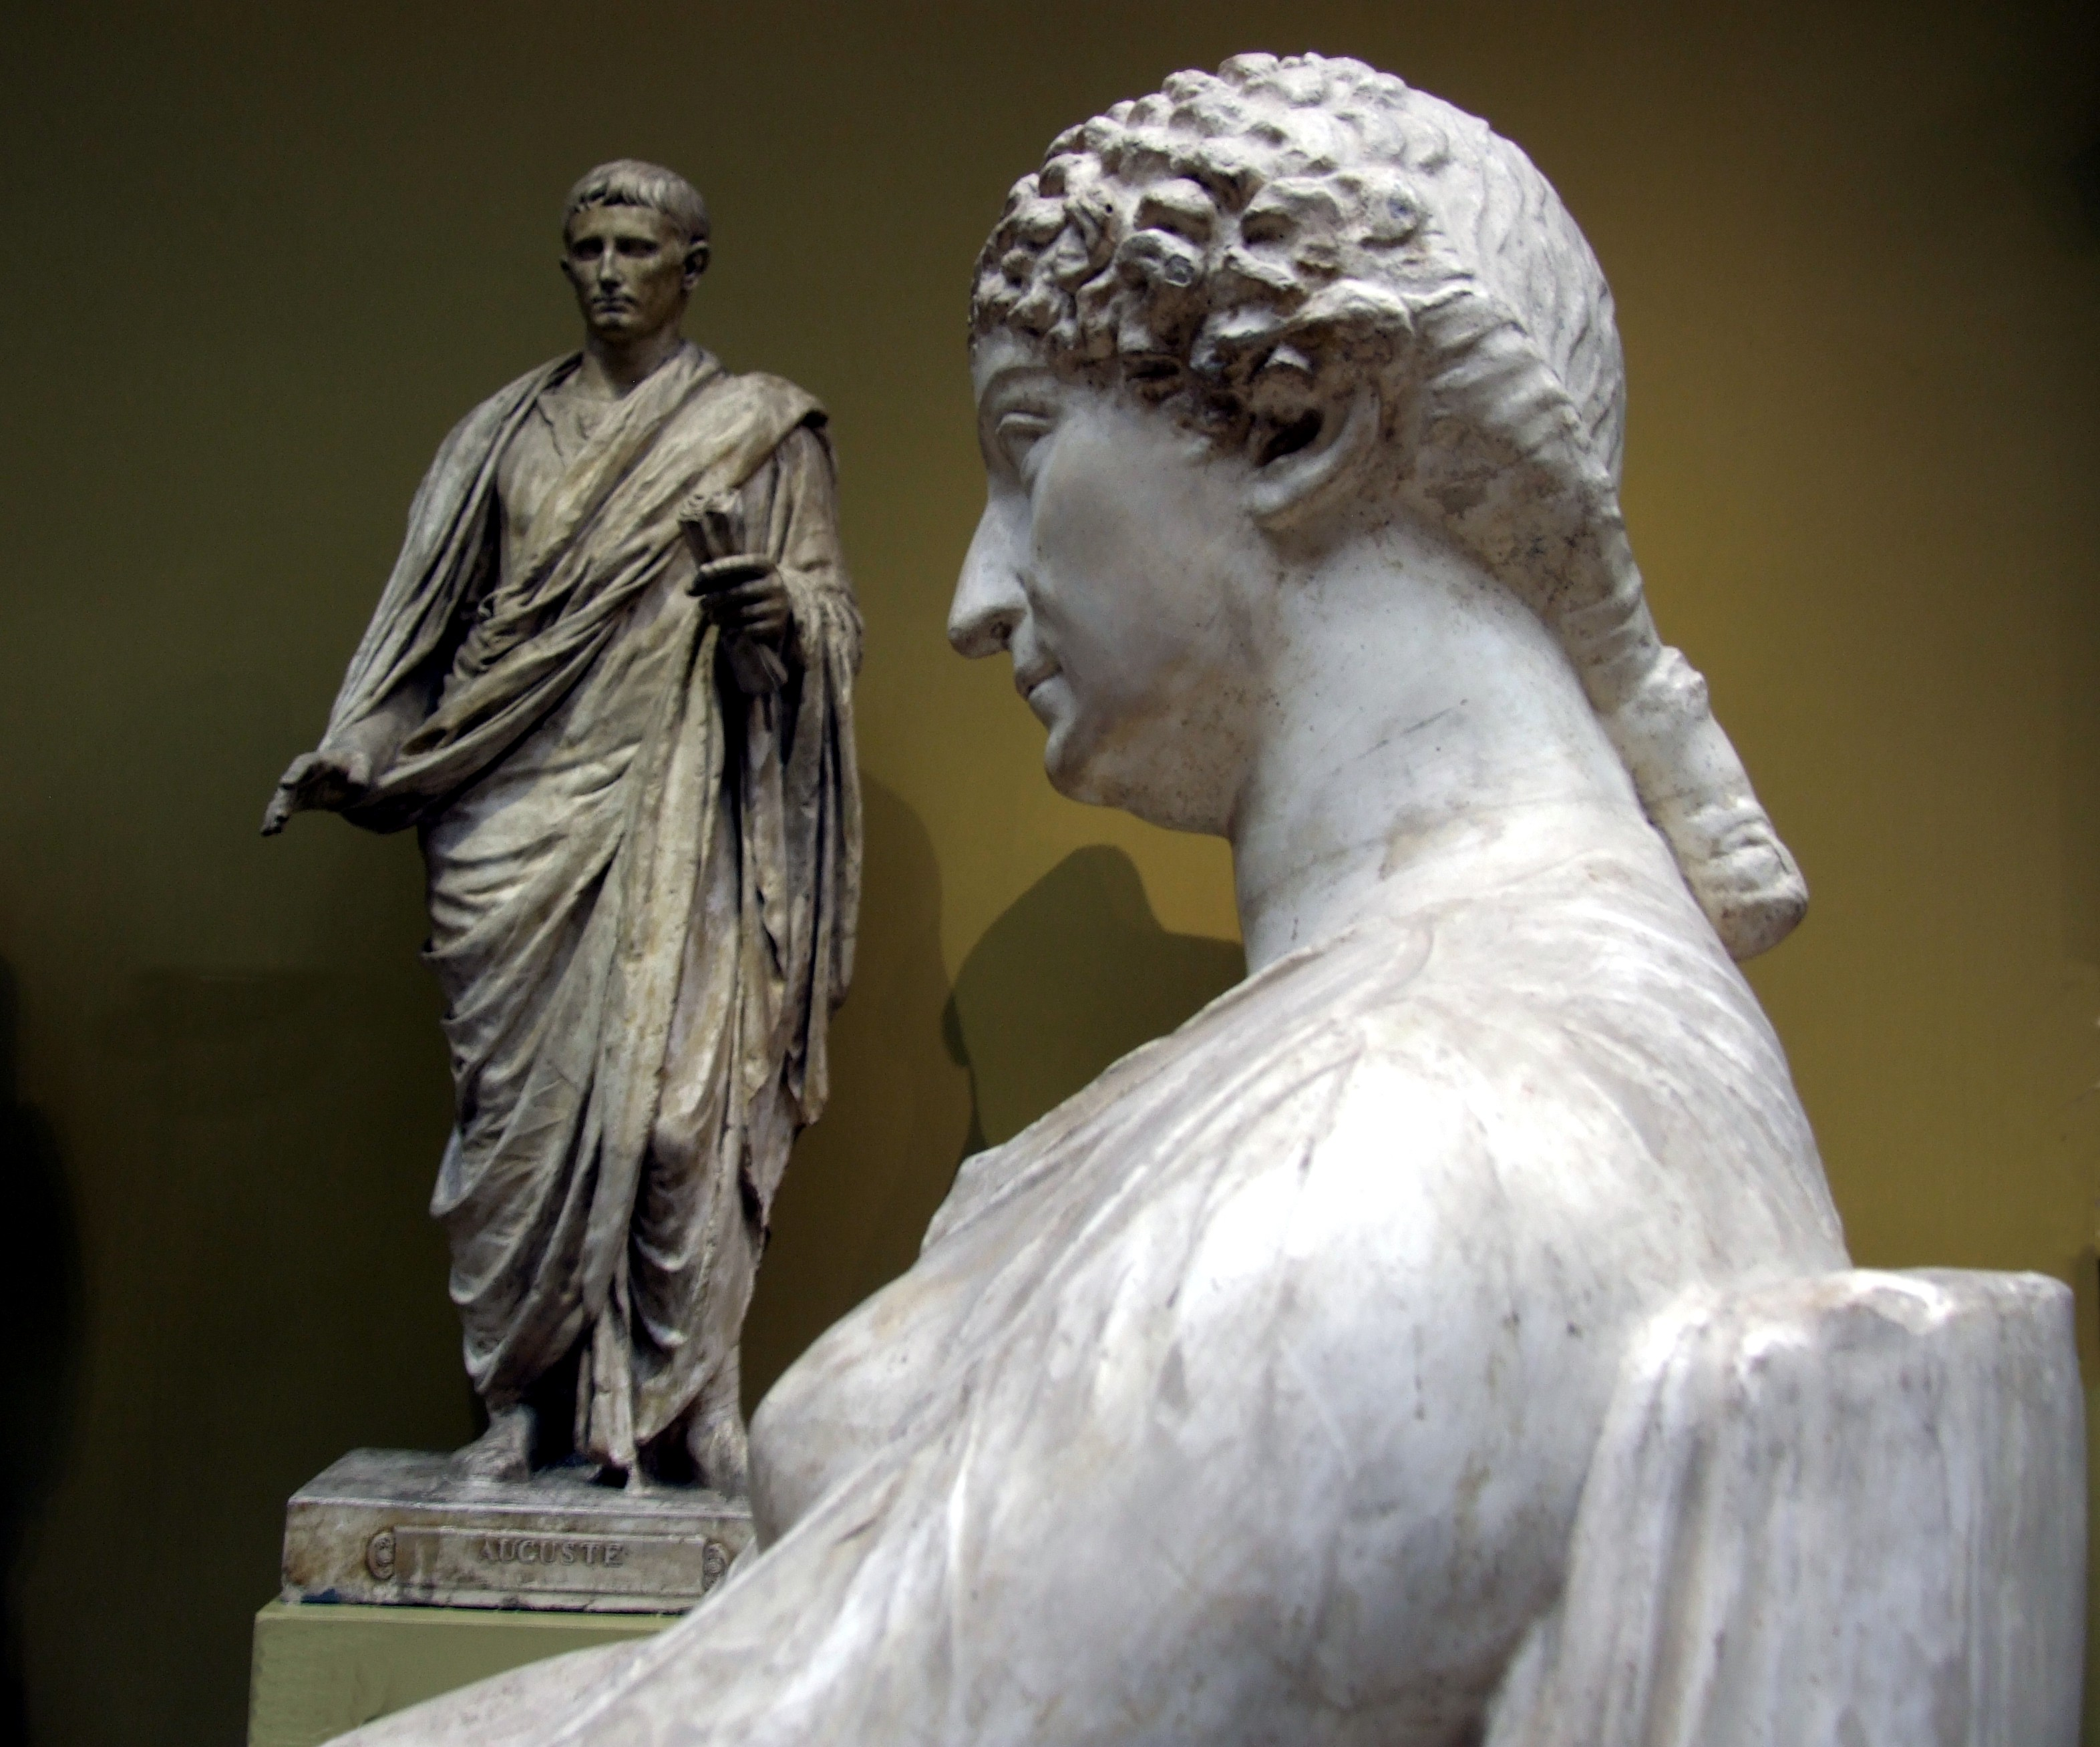 agrippina the younger rome a symbol of strength essay Plutarch elaborated on this phrase in his essay allegedly said by nero of the poisoned mushrooms with which his mother agrippina the younger [is] my strength.